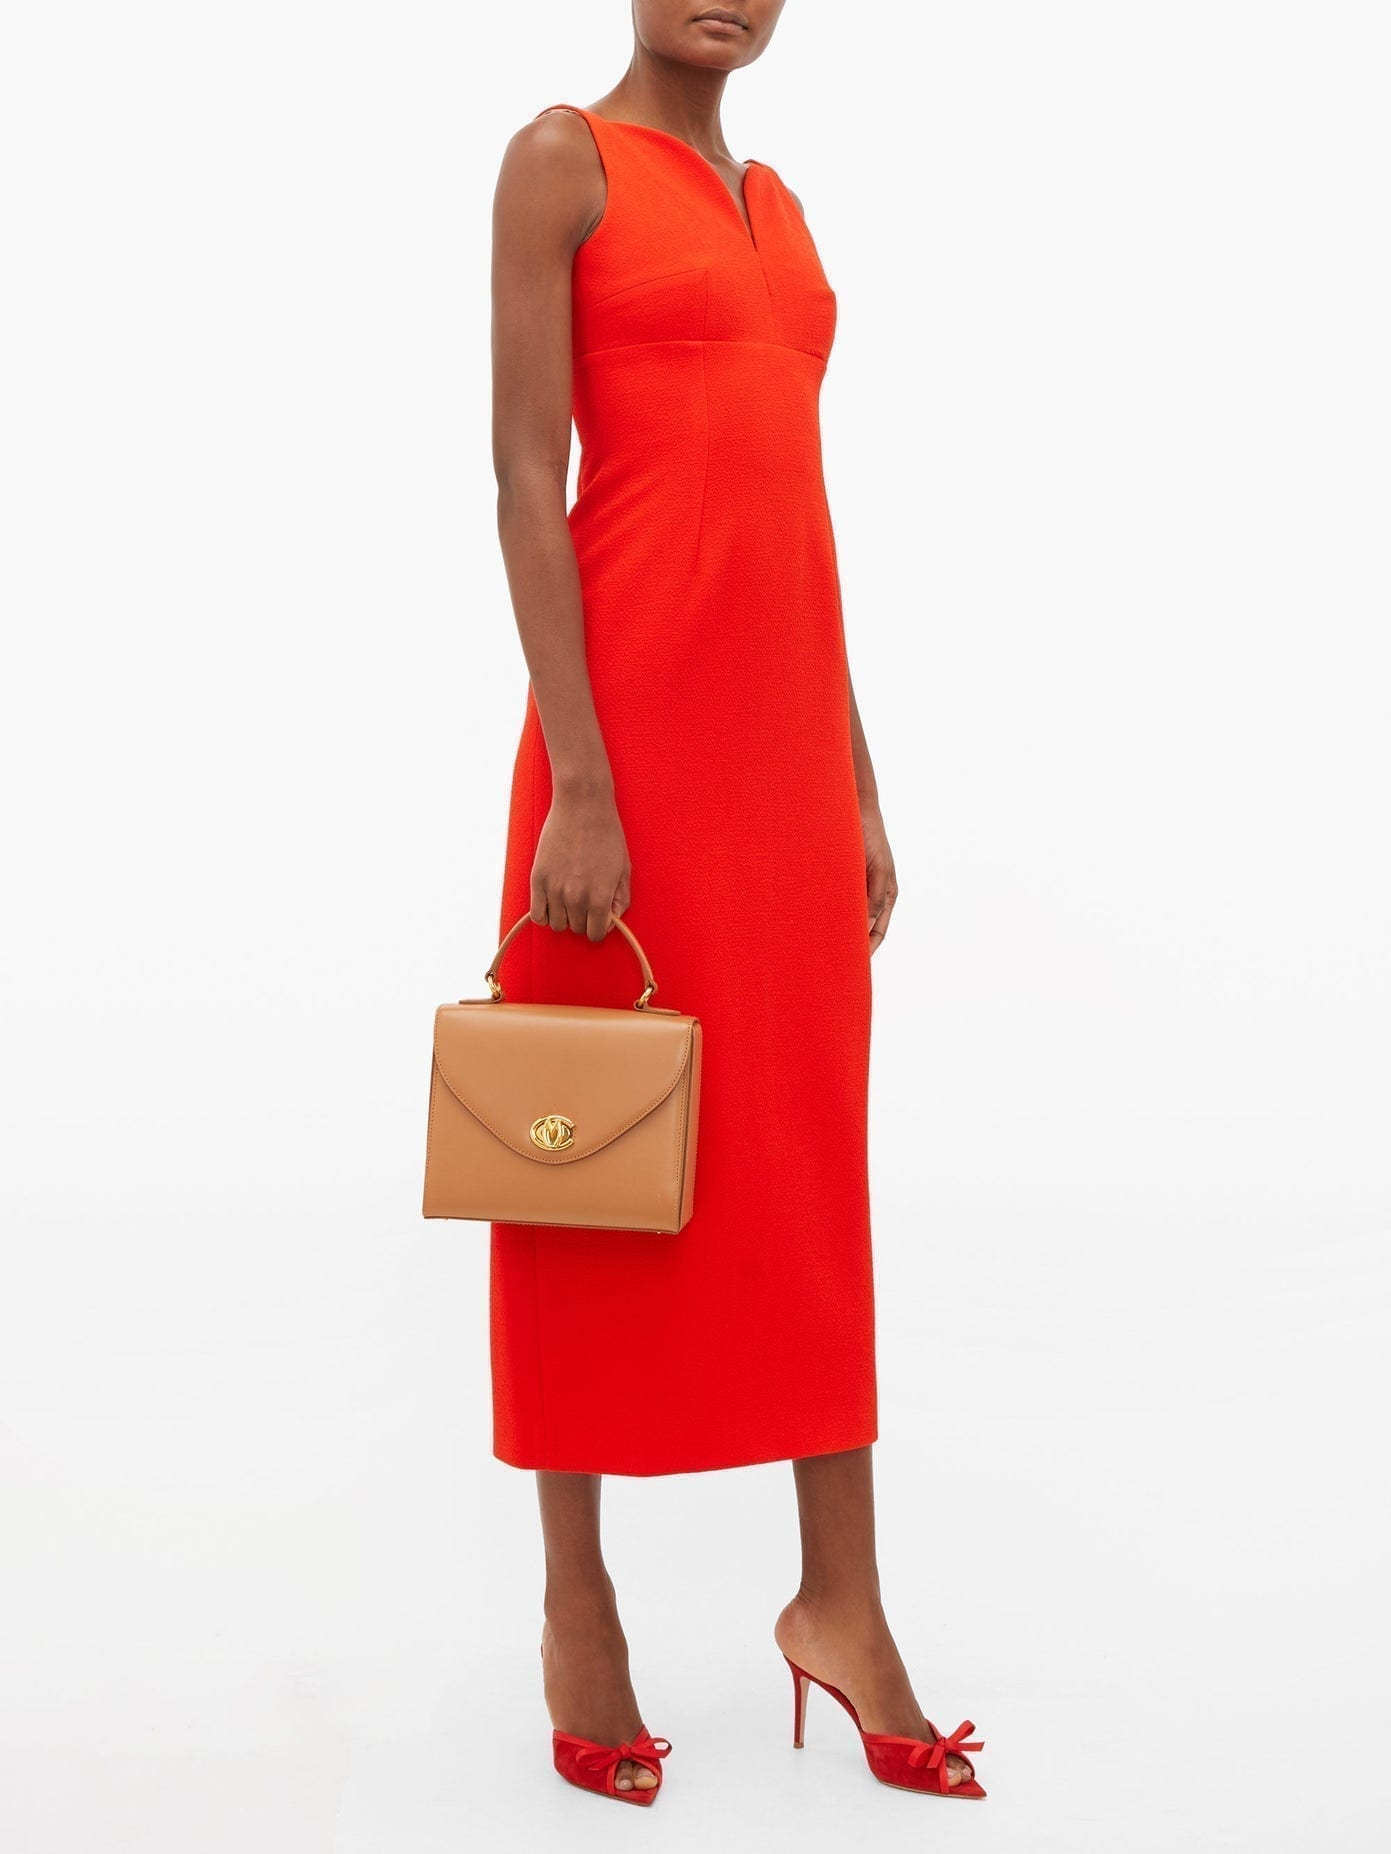 EMILIA WICKSTEAD Mathilda Sweetheart-neckline Crepe Dress